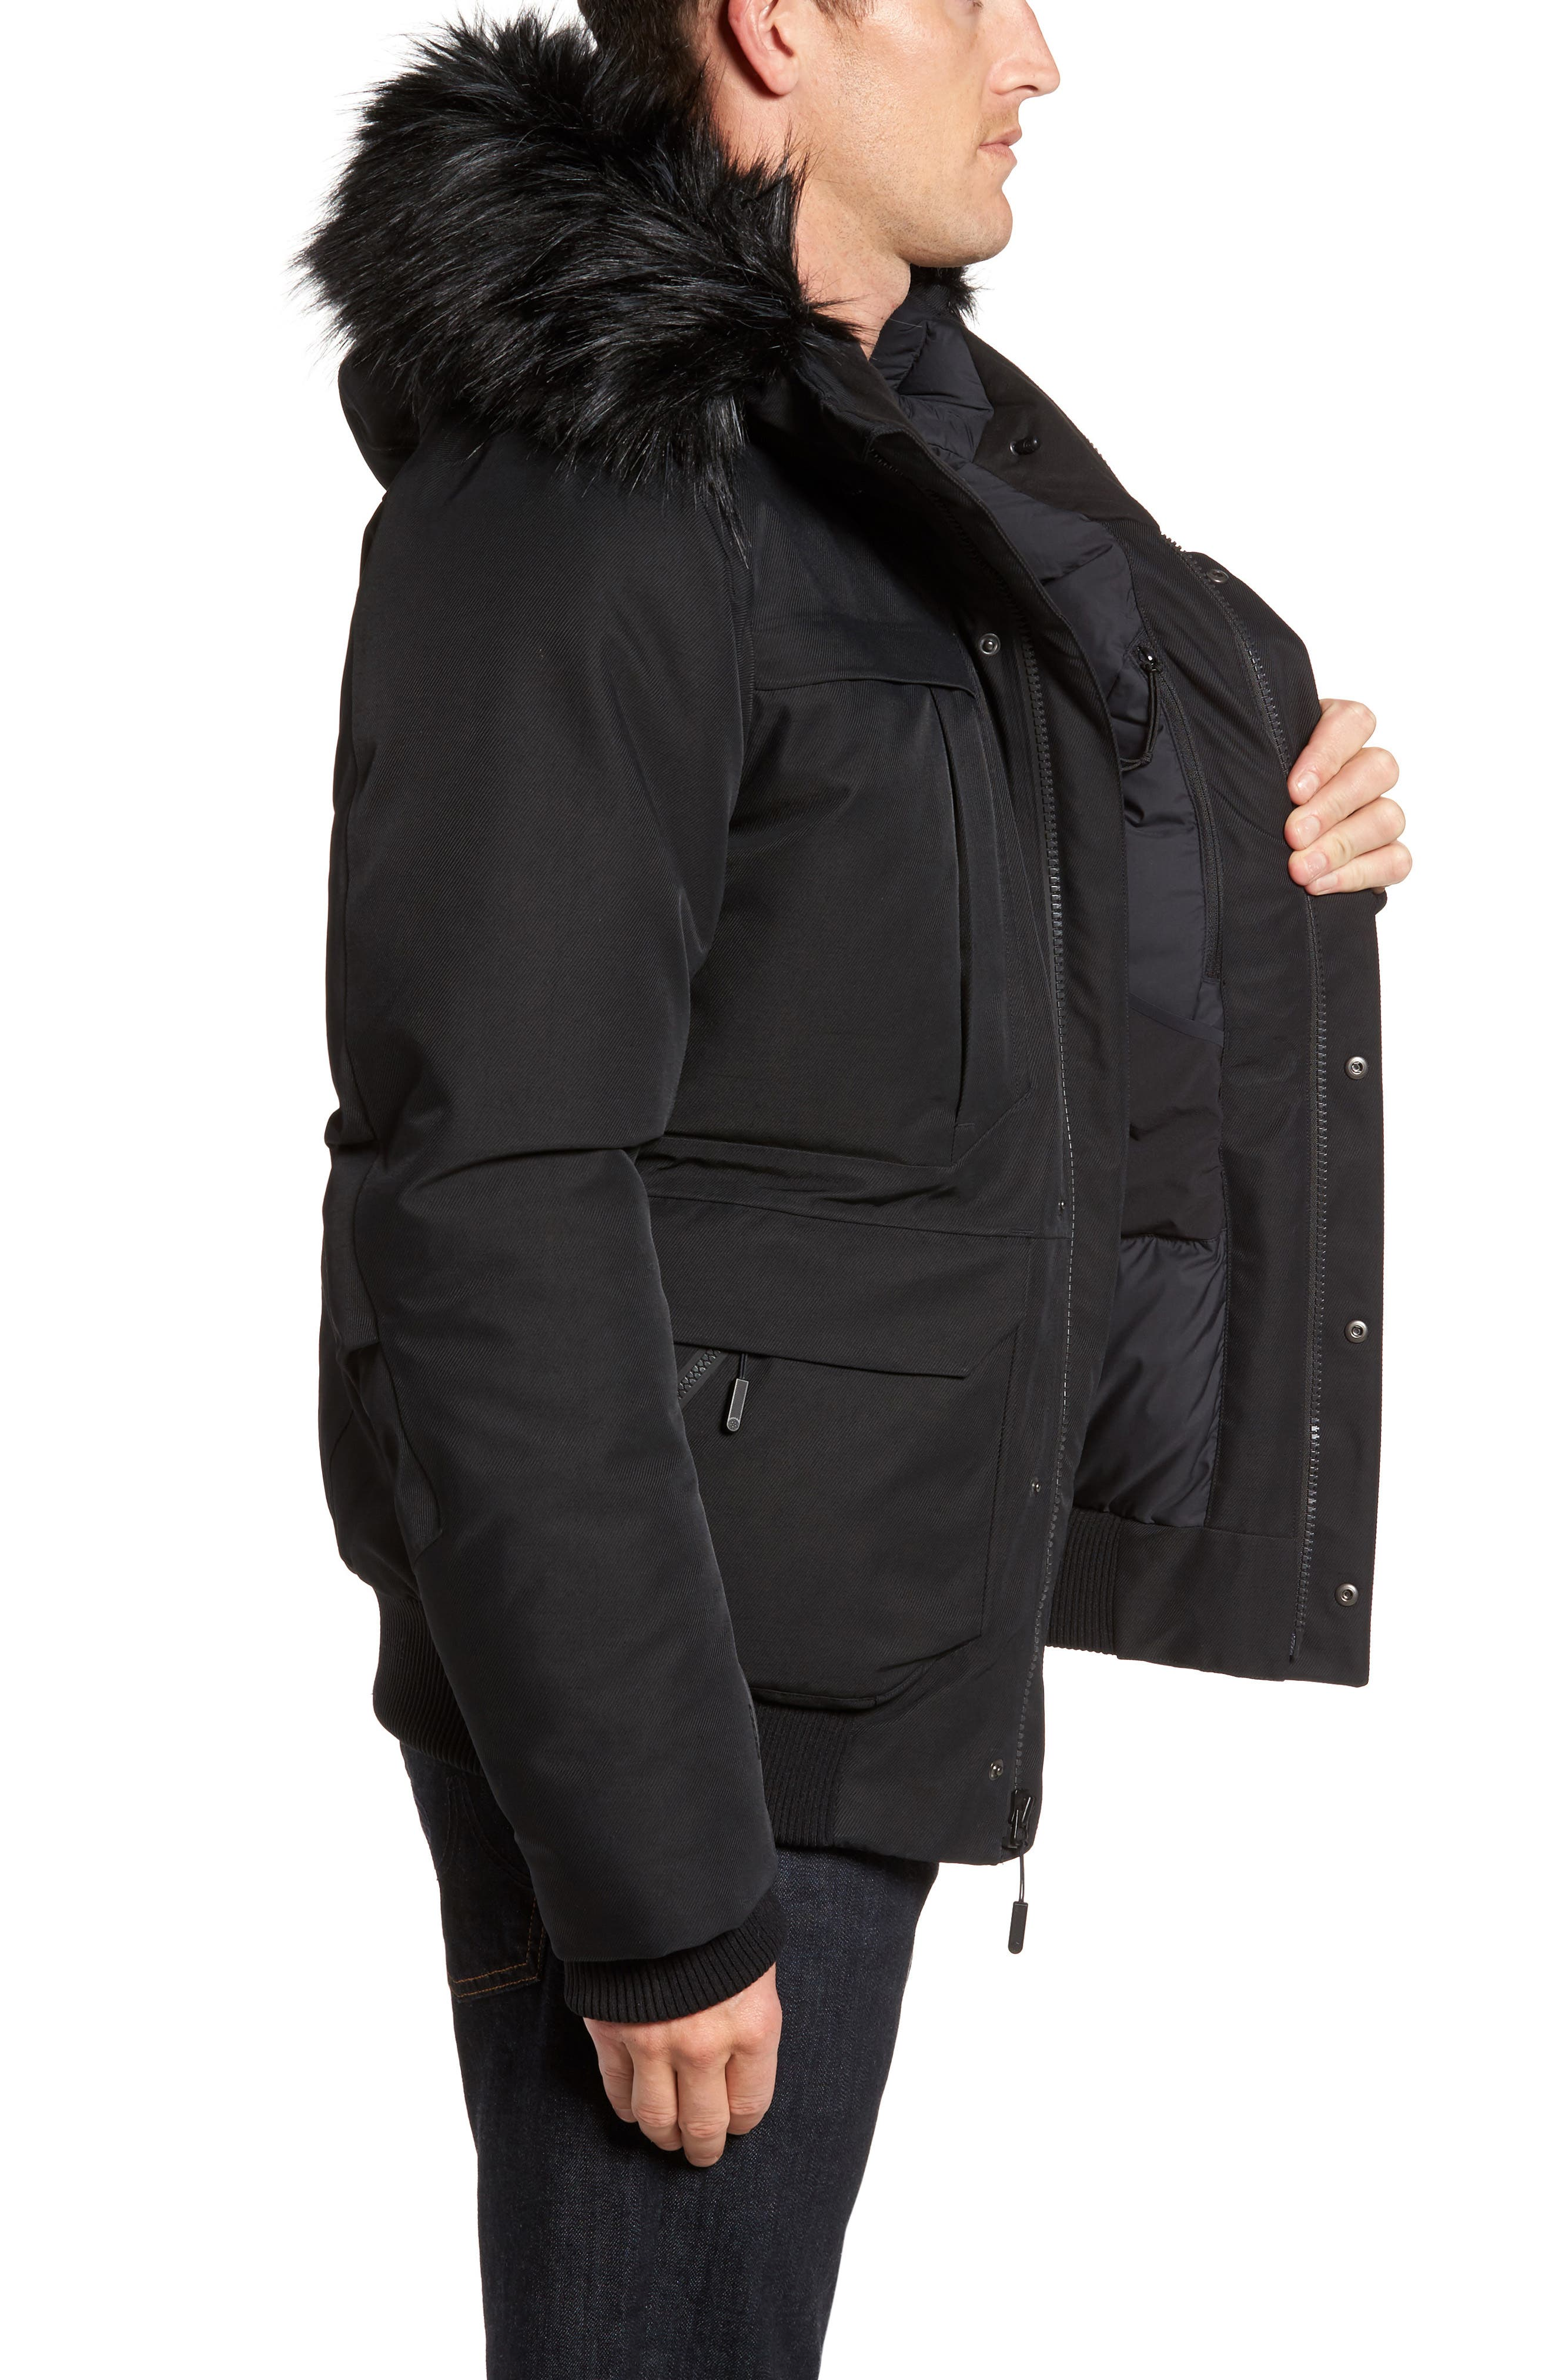 Cryos Expedition Gore-Tex<sup>®</sup> Bomber Jacket,                             Alternate thumbnail 7, color,